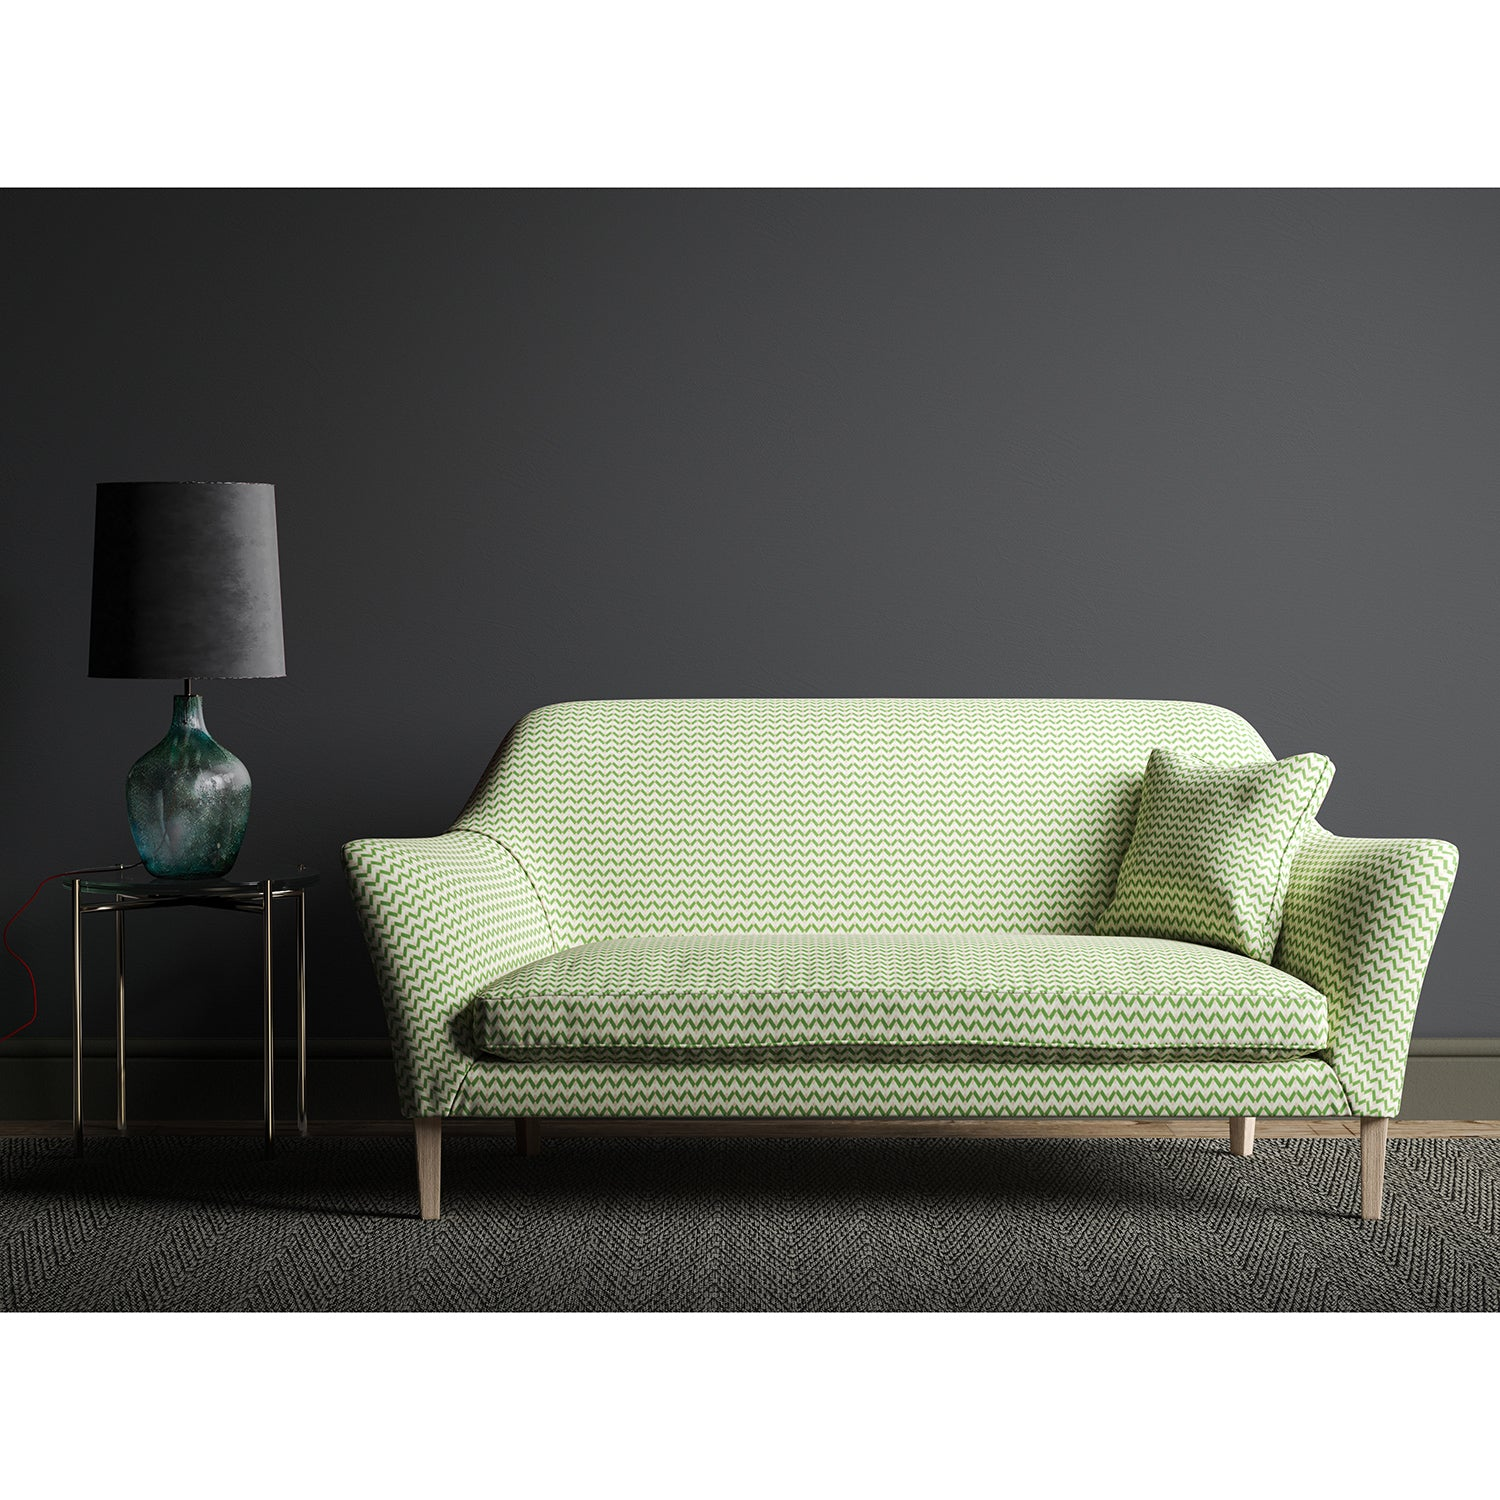 Sofa upholstered in a small scale green, pink and cream geometric weave